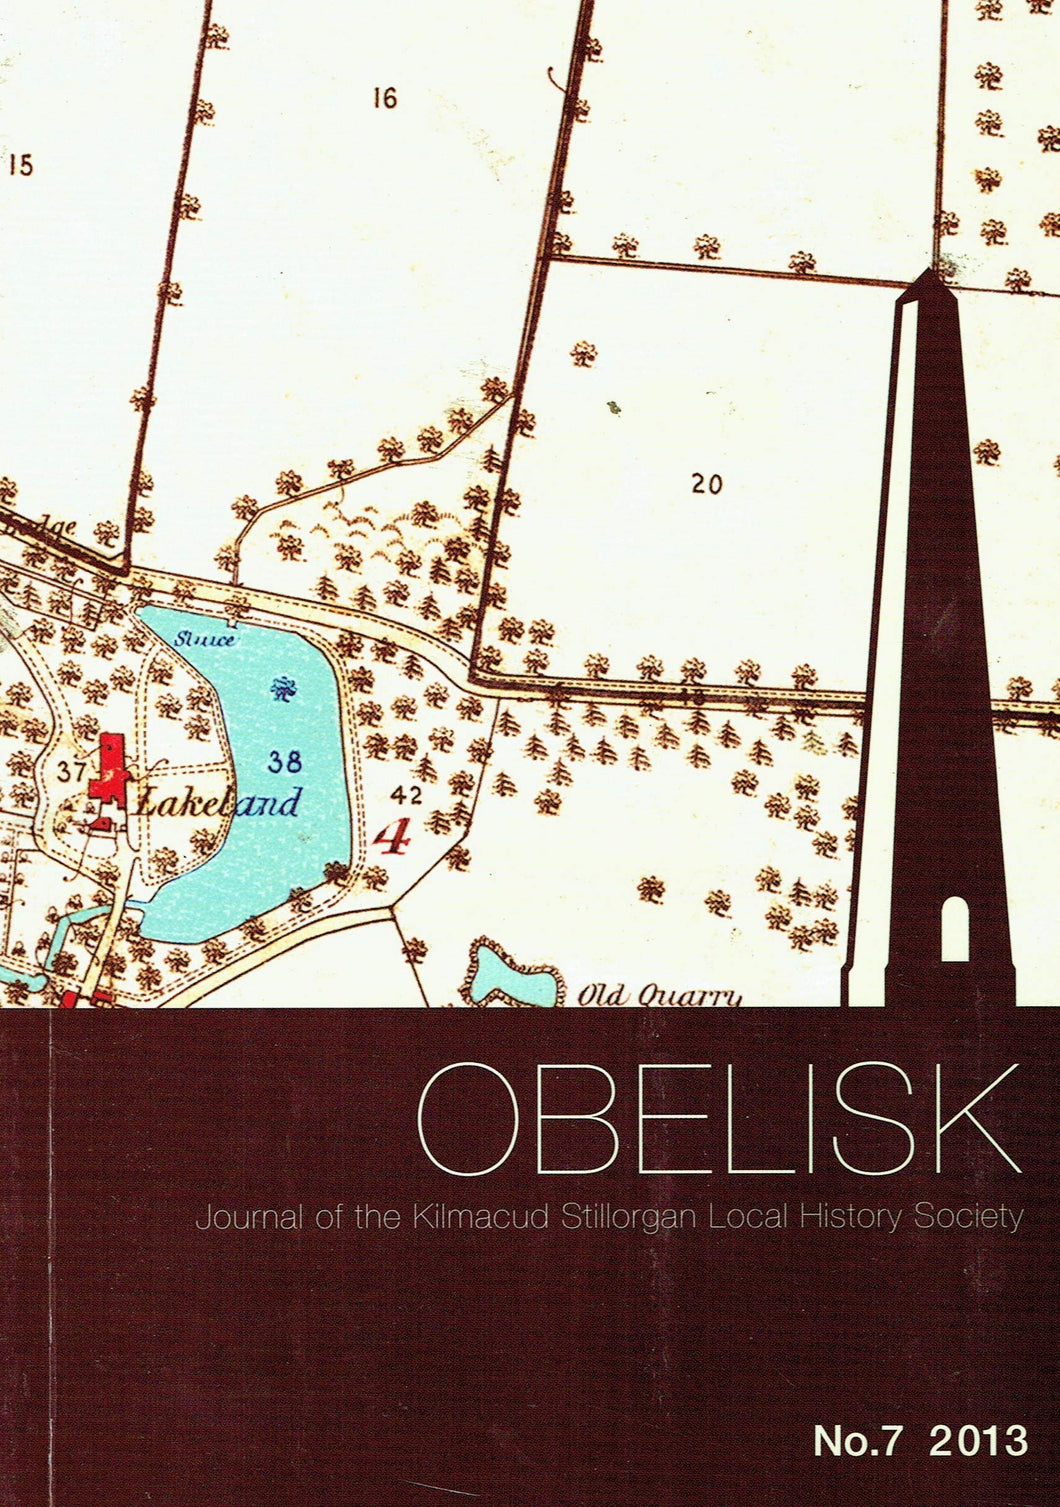 Obelisk, No. 7 - 2013: Journal of the Kilmacud Stillorgan Local History Society